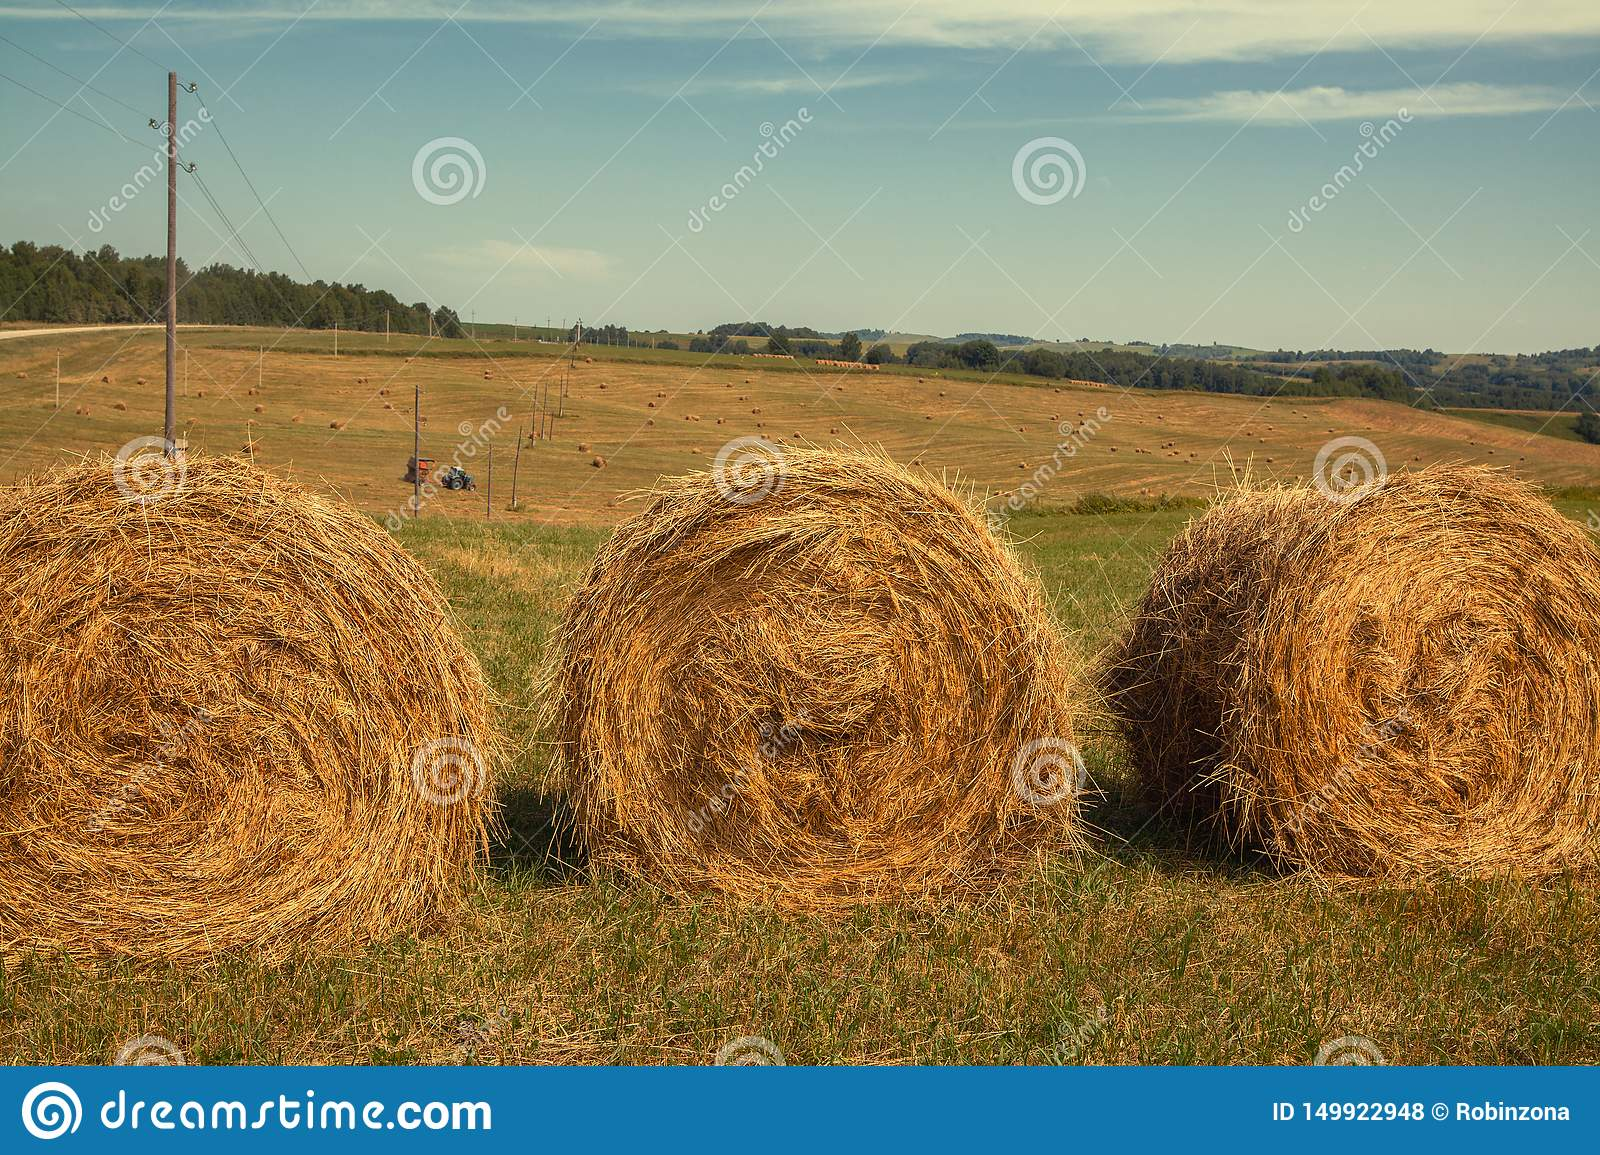 Hayfield. Hay harvesting Sunny autumn landscape. rolls of fresh dry hay in the fields. tractor collects mown grass. fields of